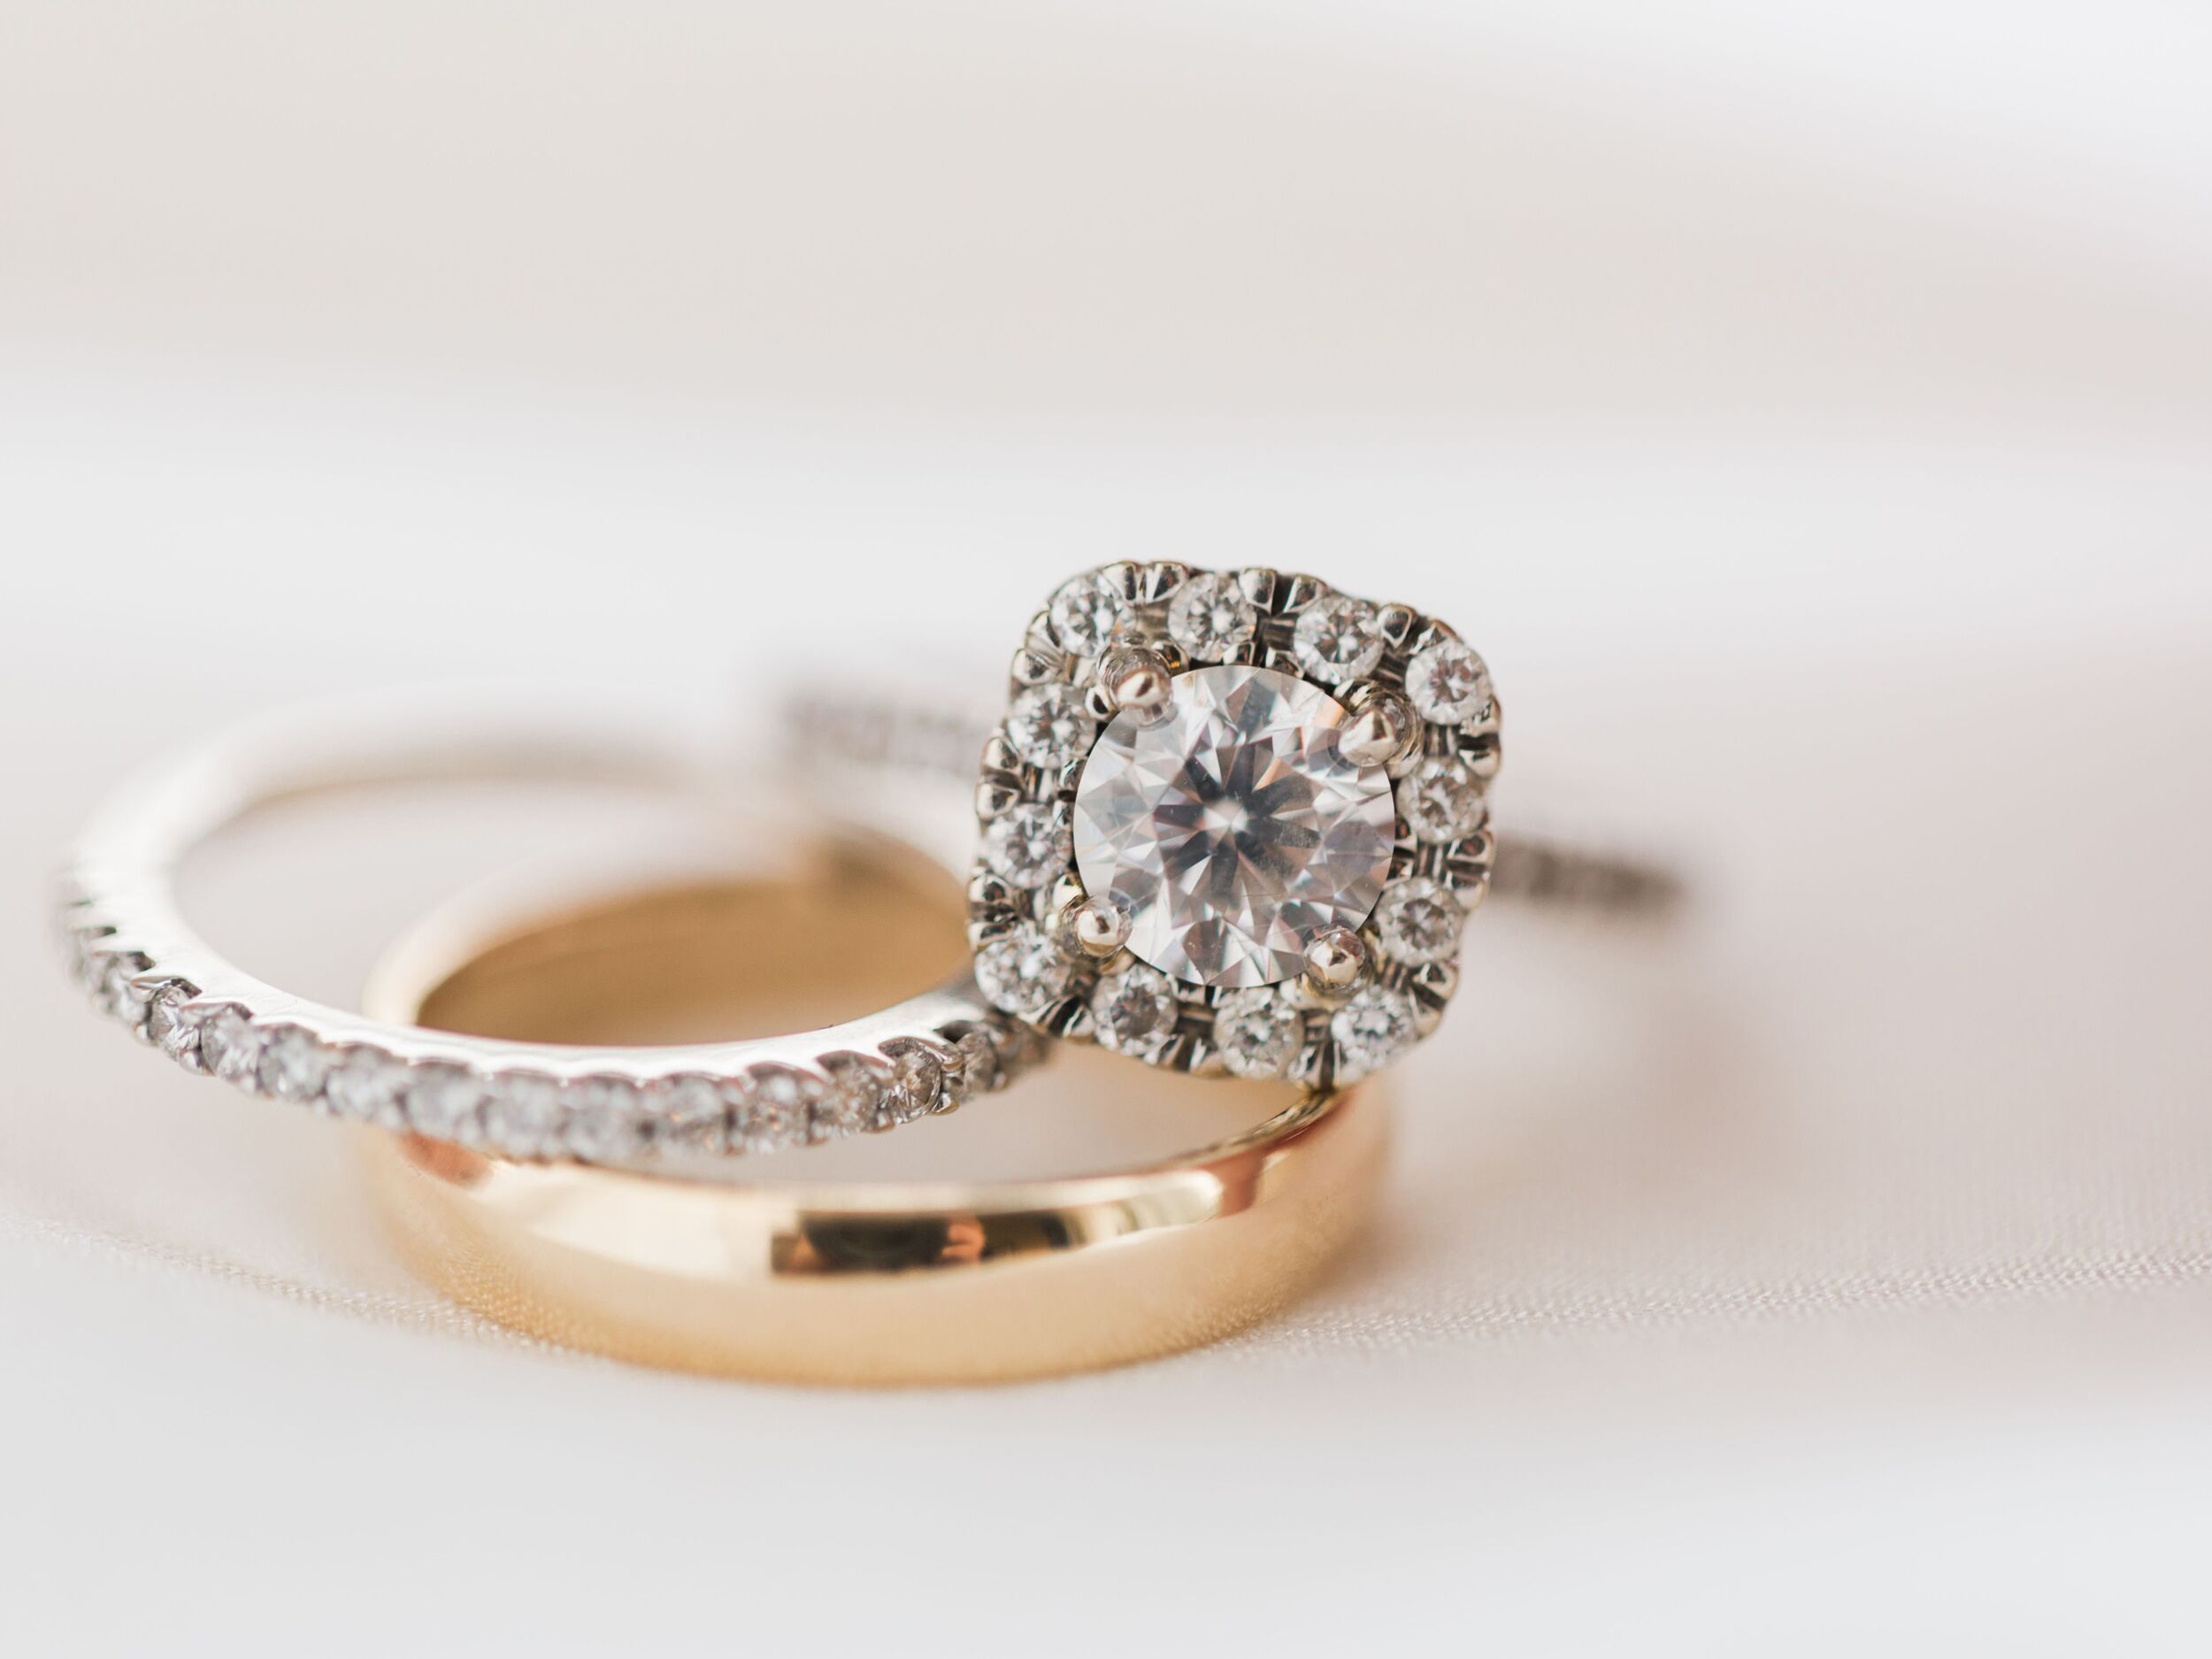 The Wedding Ring Etiquette Ceremony Guide Who Should Hold The Rings